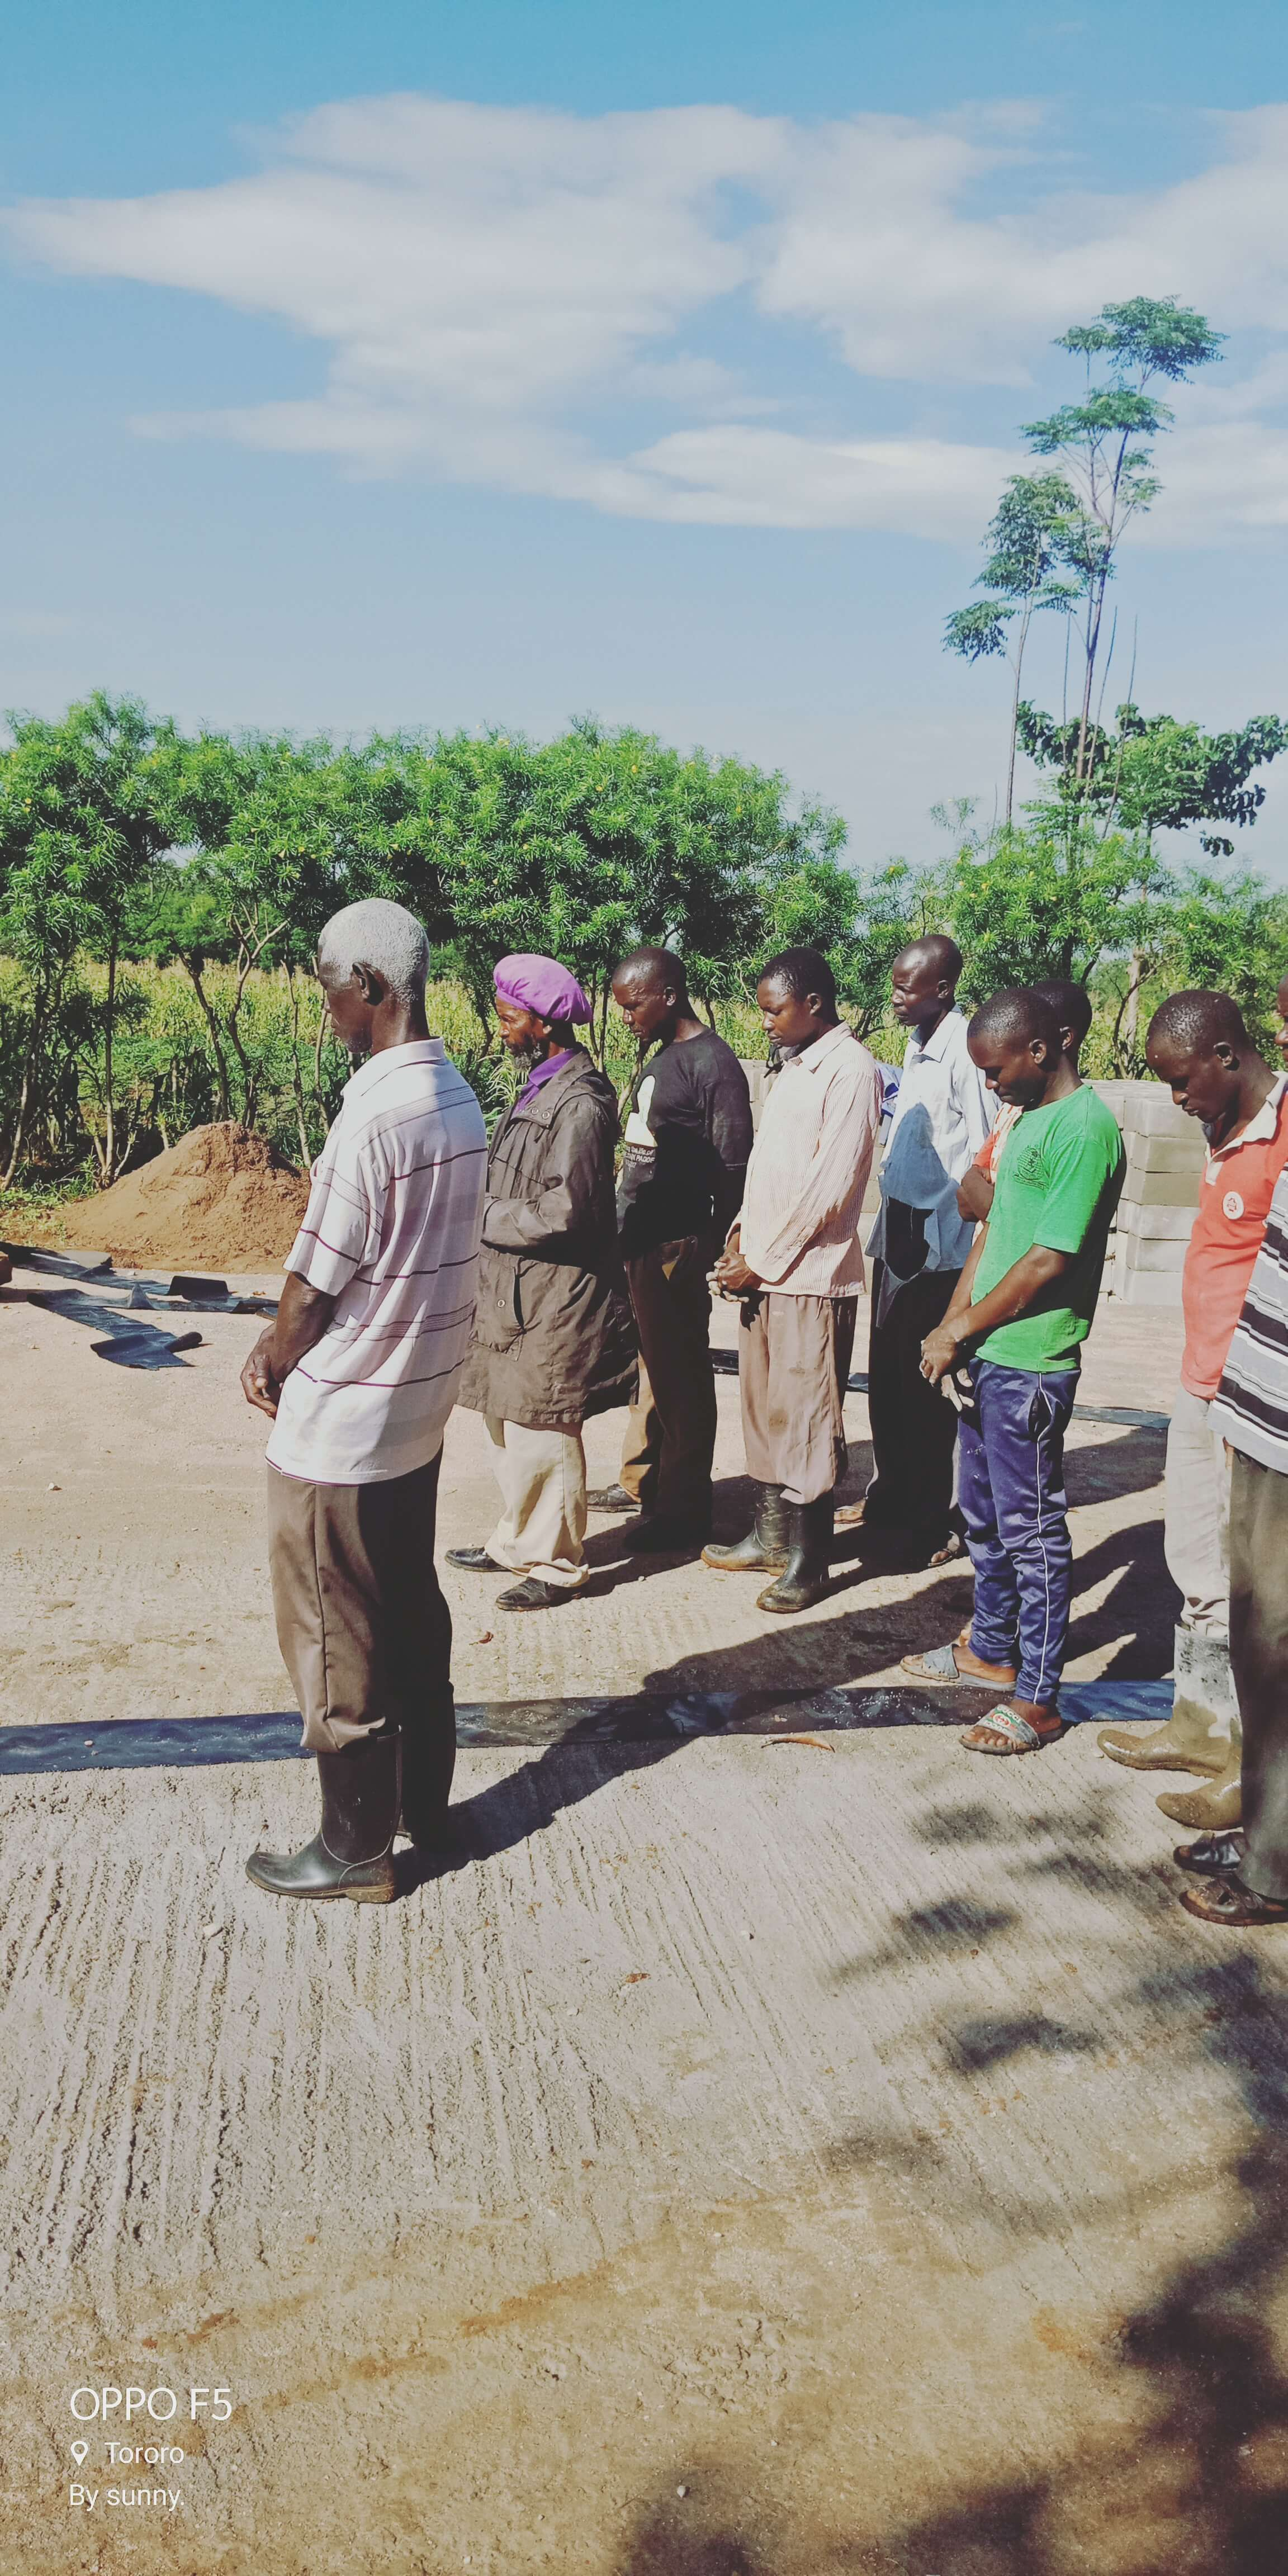 Villagers gather to pray before starting work for the day